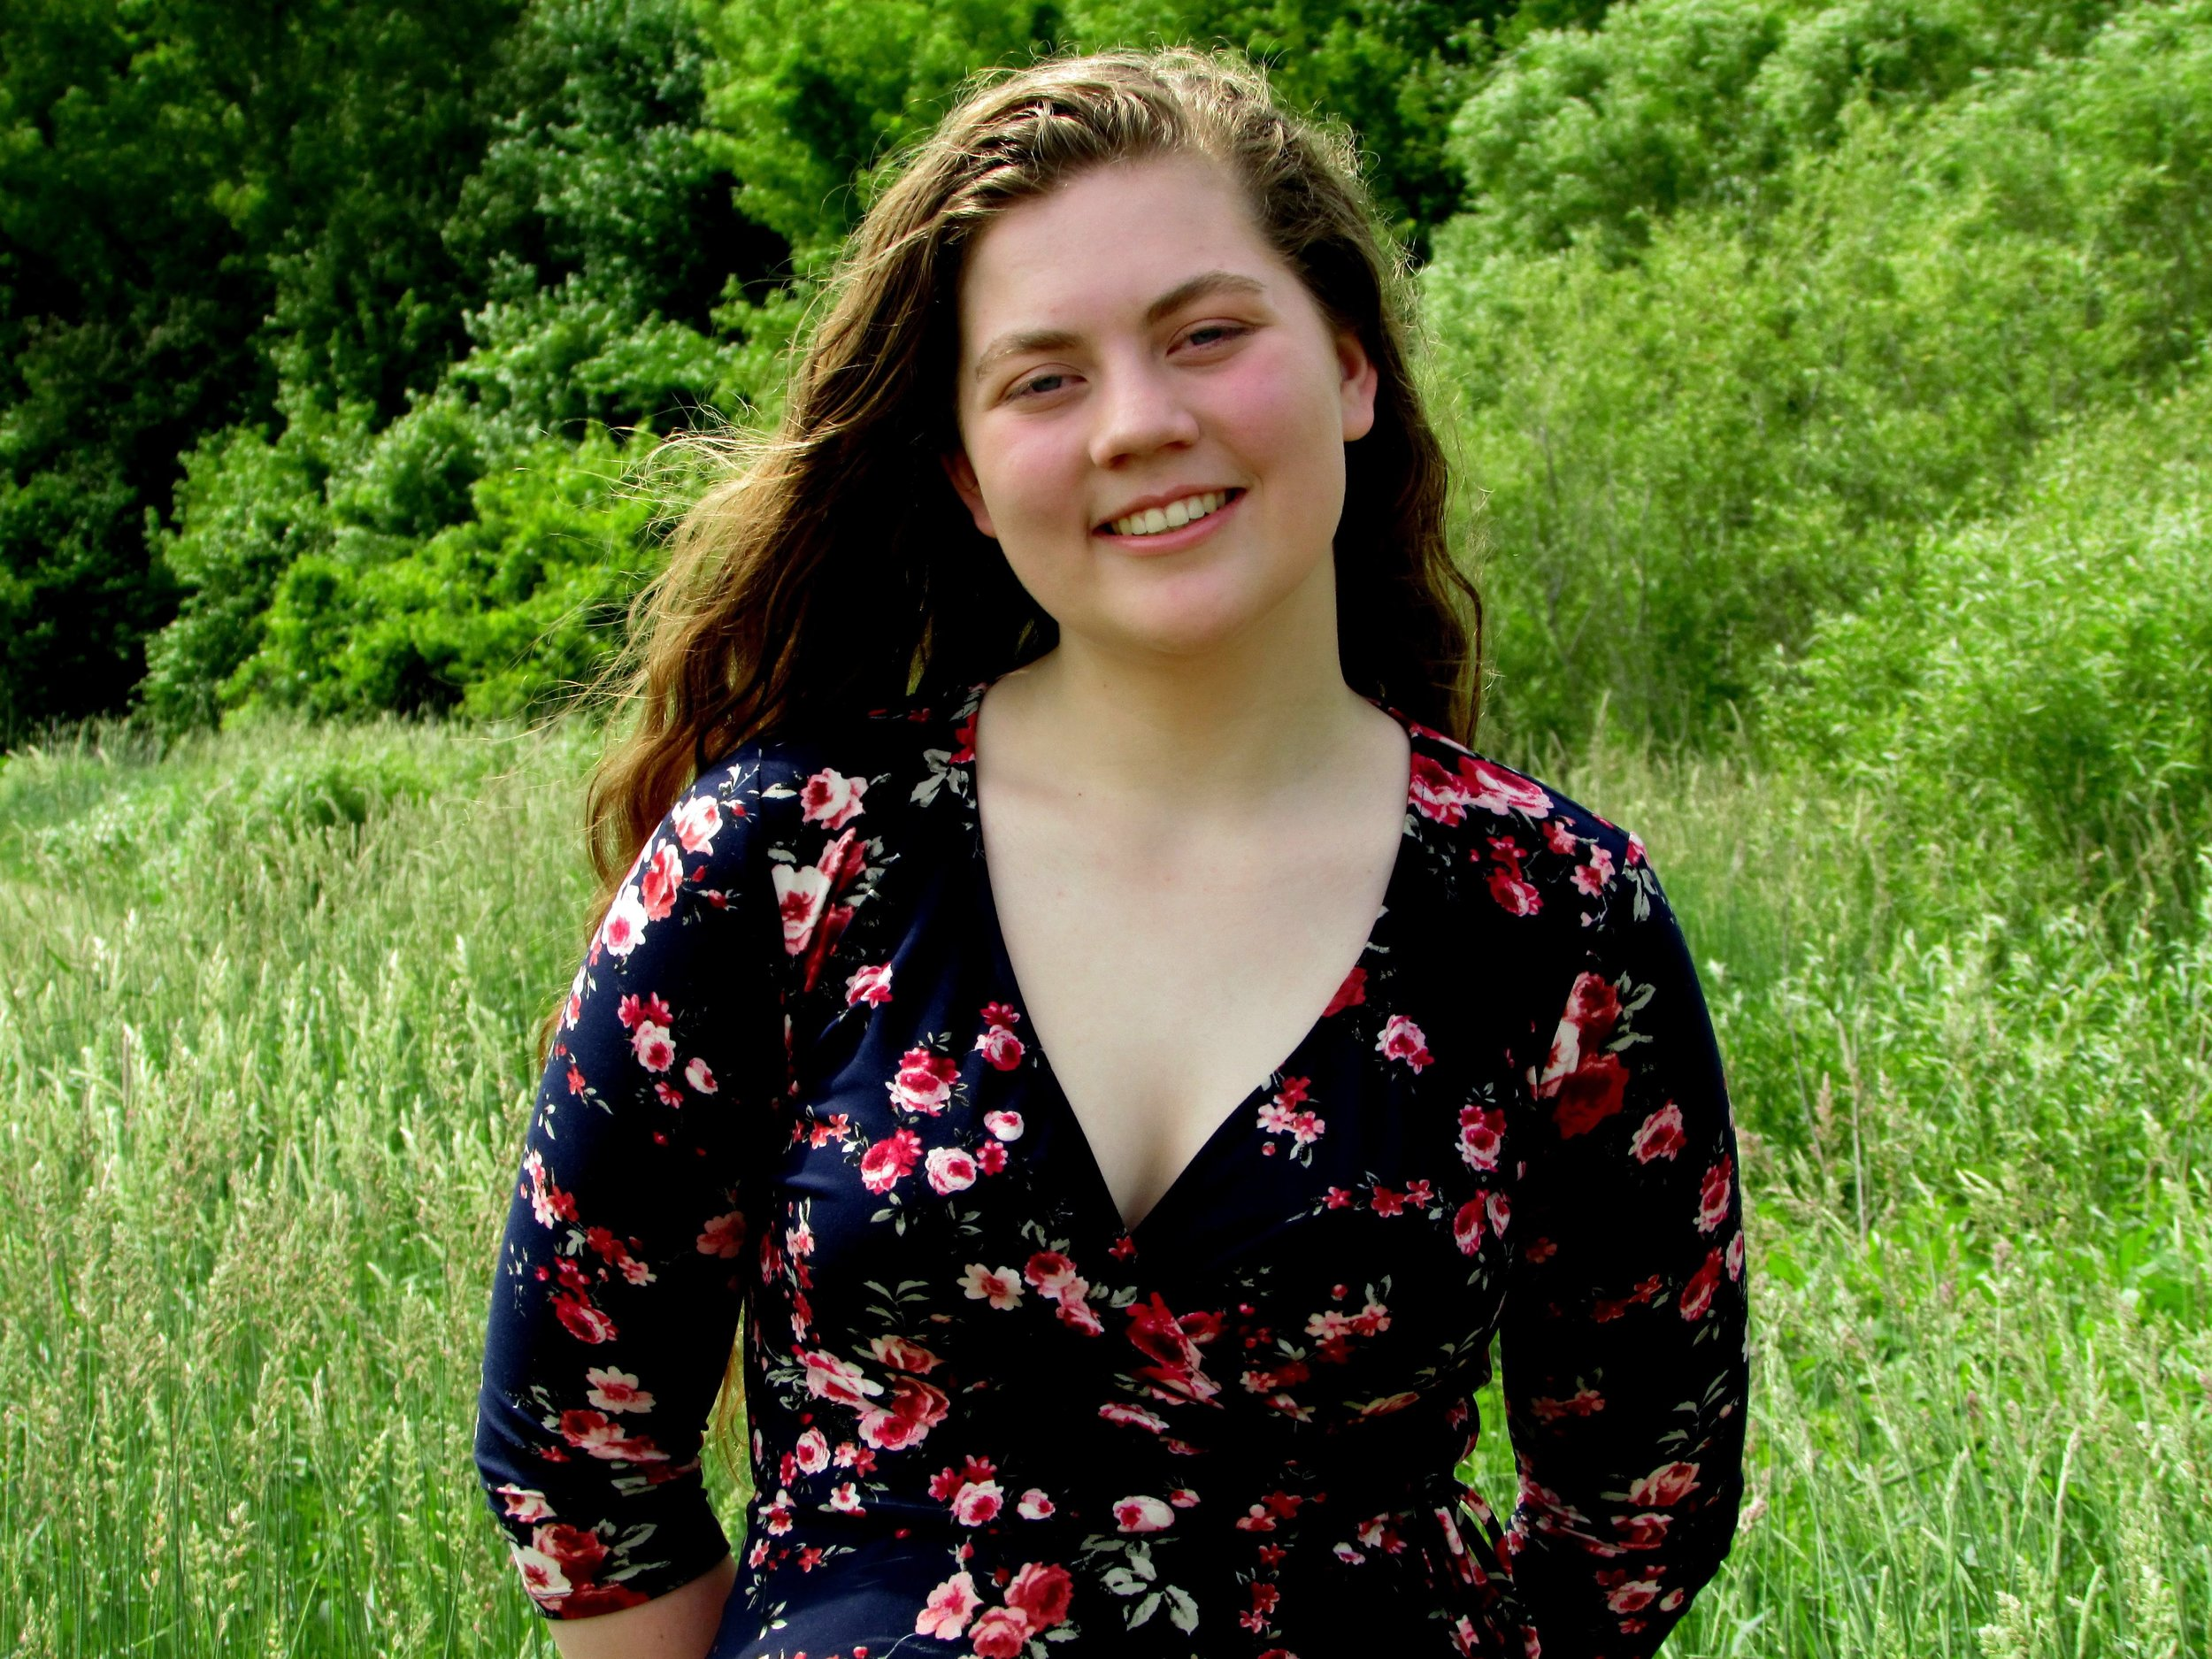 Sheridan Baker - Sheridan Baker was born and raised in Rochester, Minnesota. Currently, she is a senior at Century High School where she is involved in theater and golf. In the fall, she will be attending Augustana University in Sioux Falls, South Dakota to study ASL interpreting.